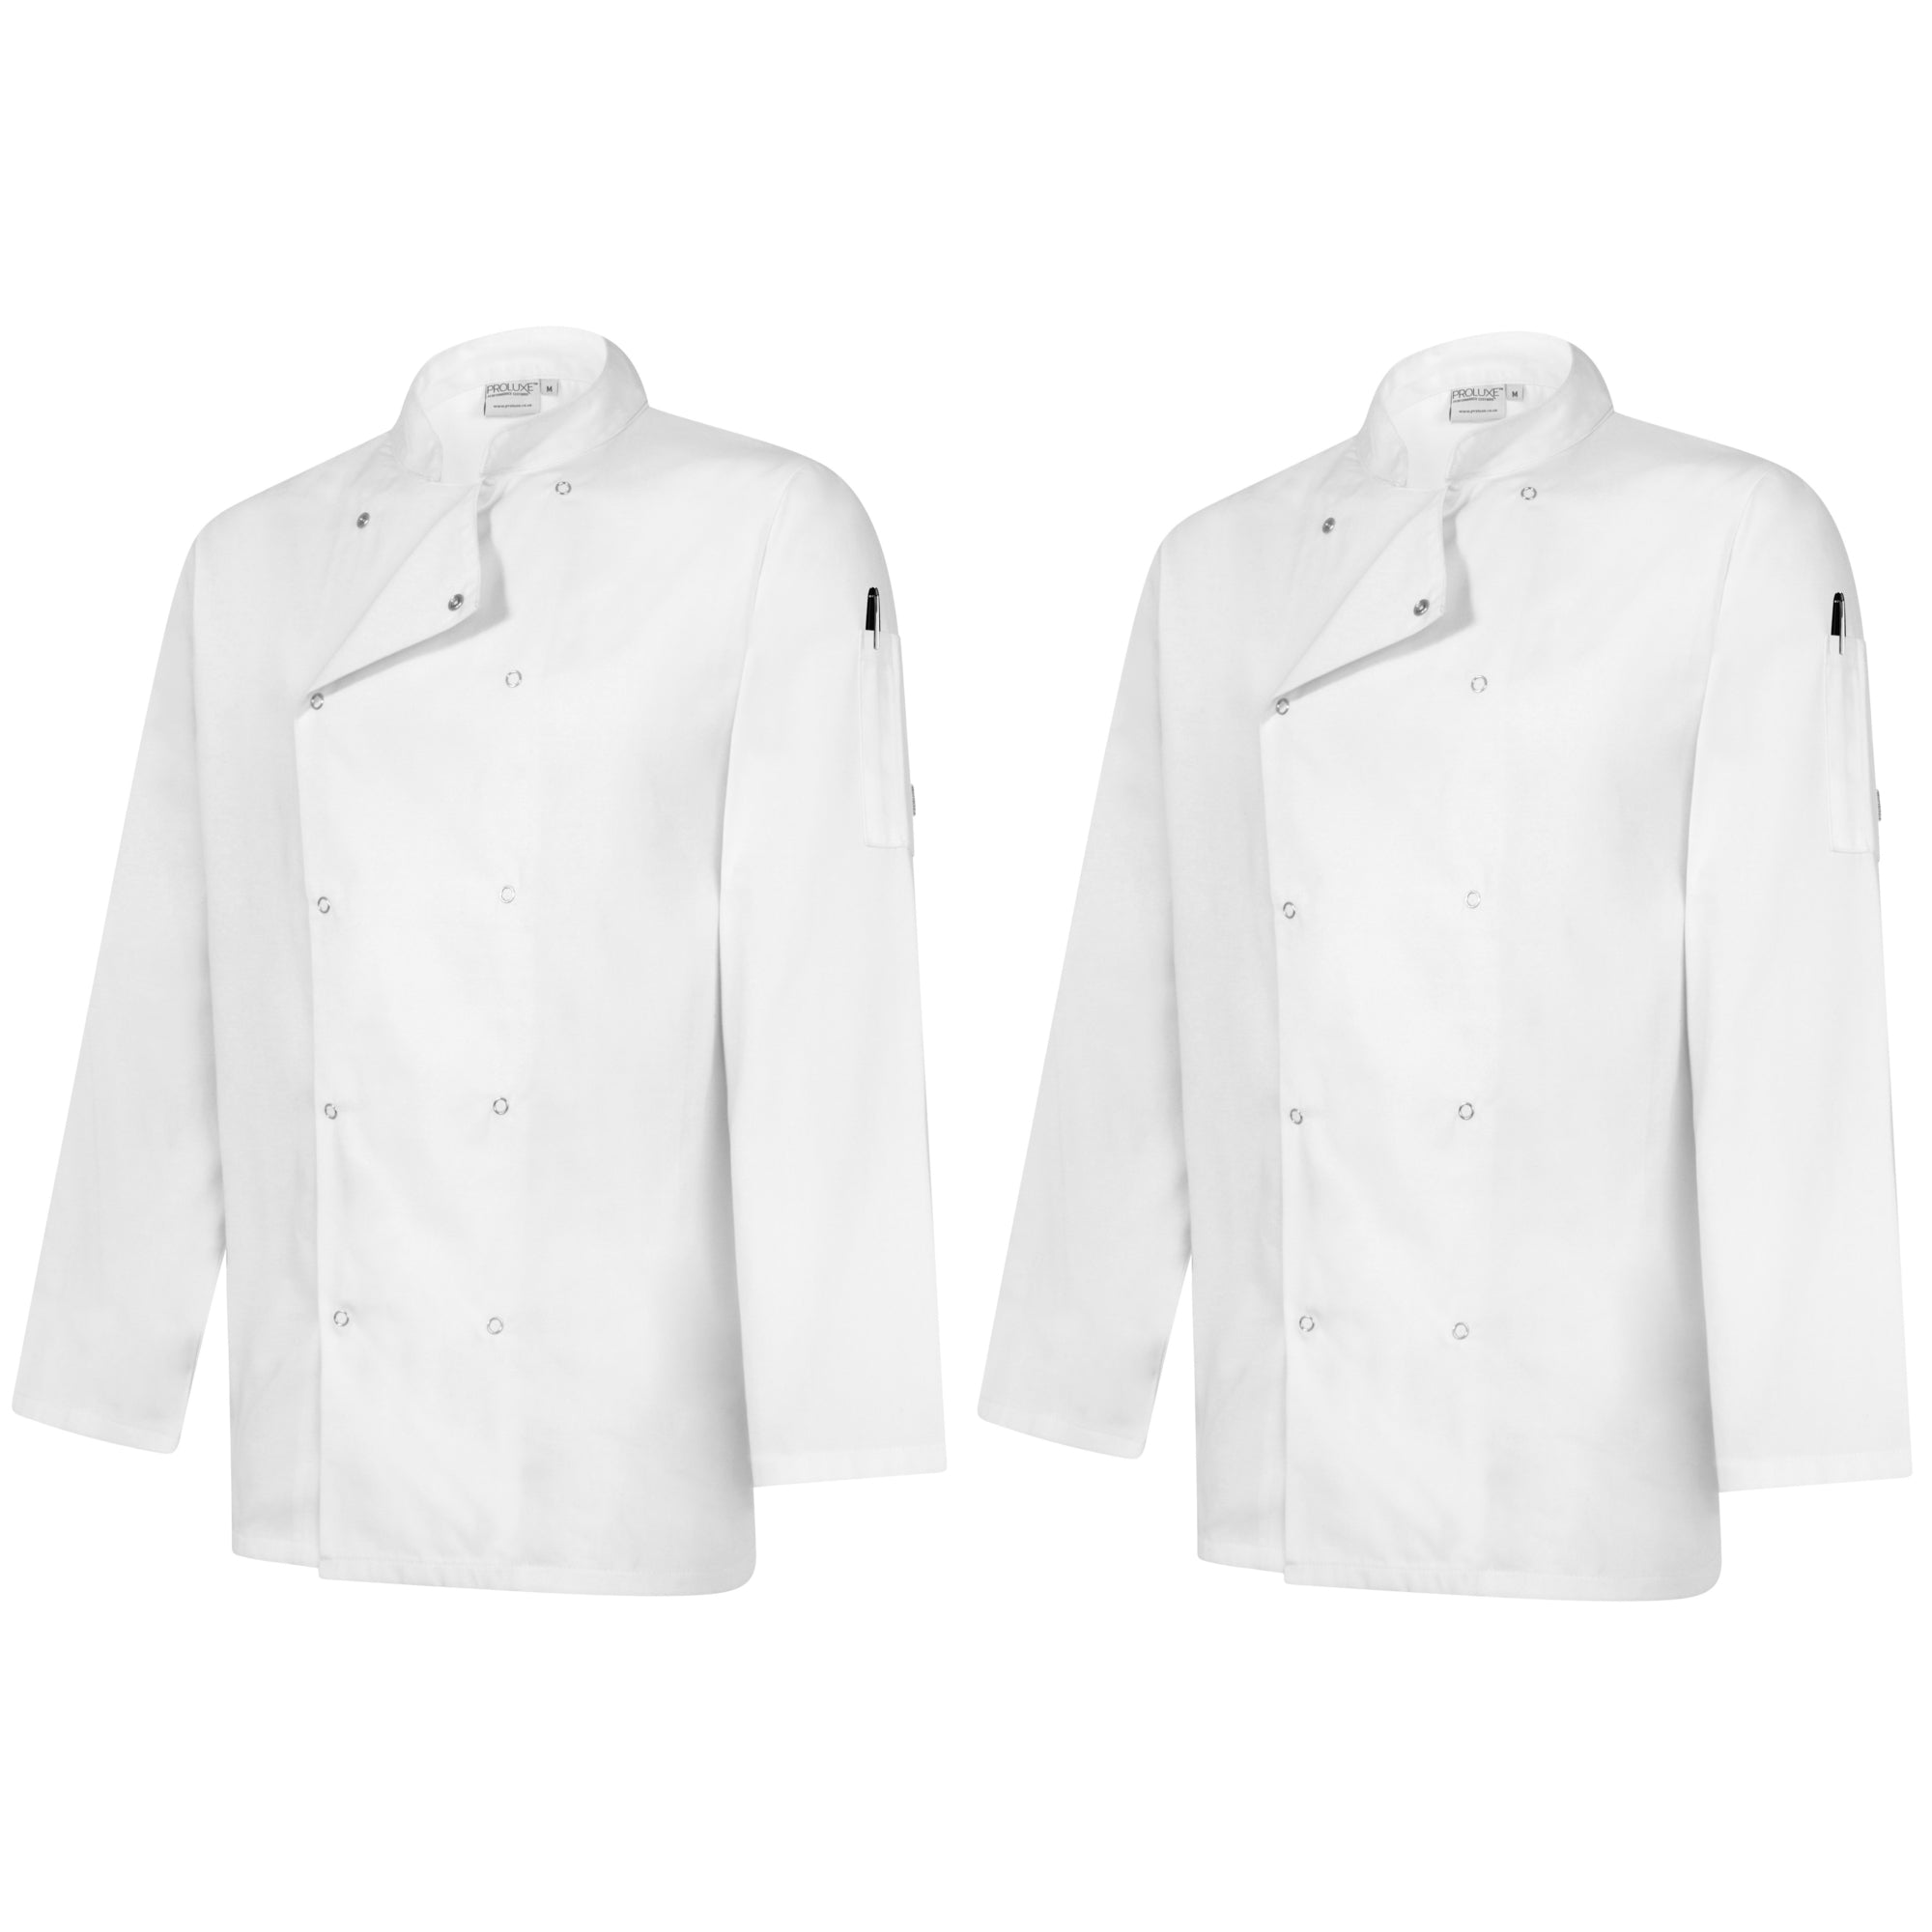 Twin Pack - Professional Chefs Jacket - Long Sleeve - White